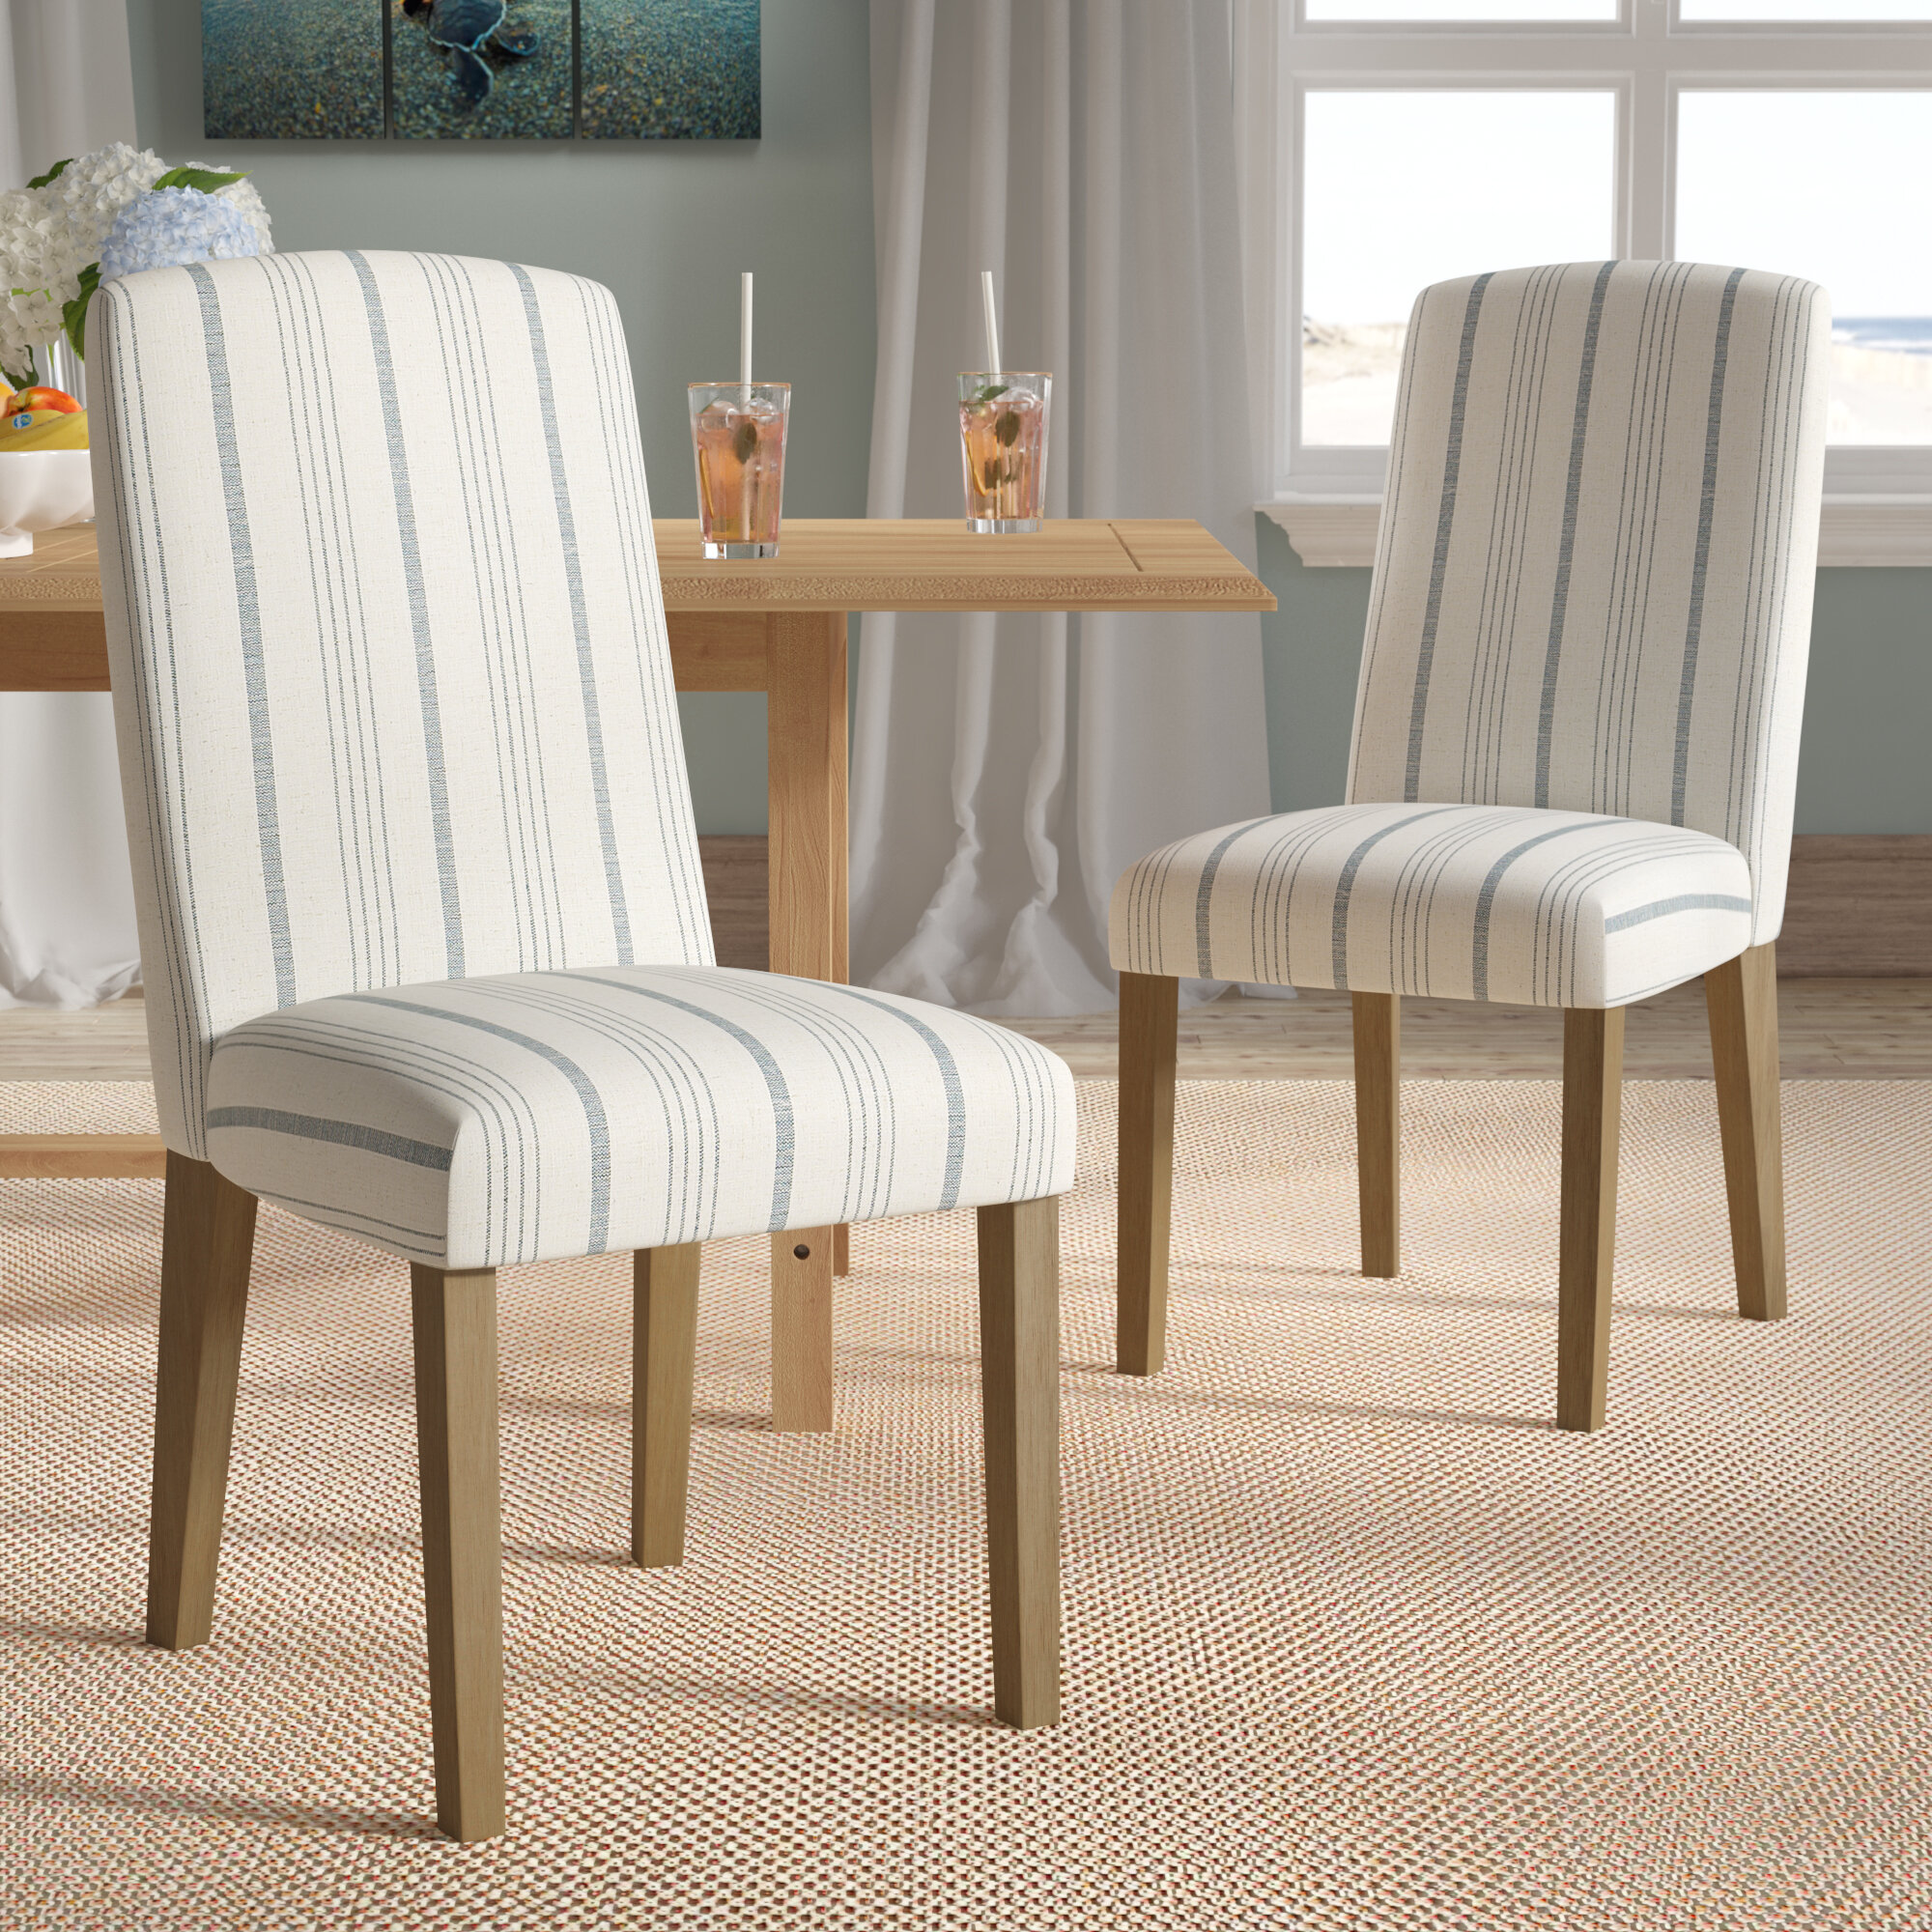 Beachcrest Home Lake Kathryn Stripe Upholstered Dining Chair Reviews